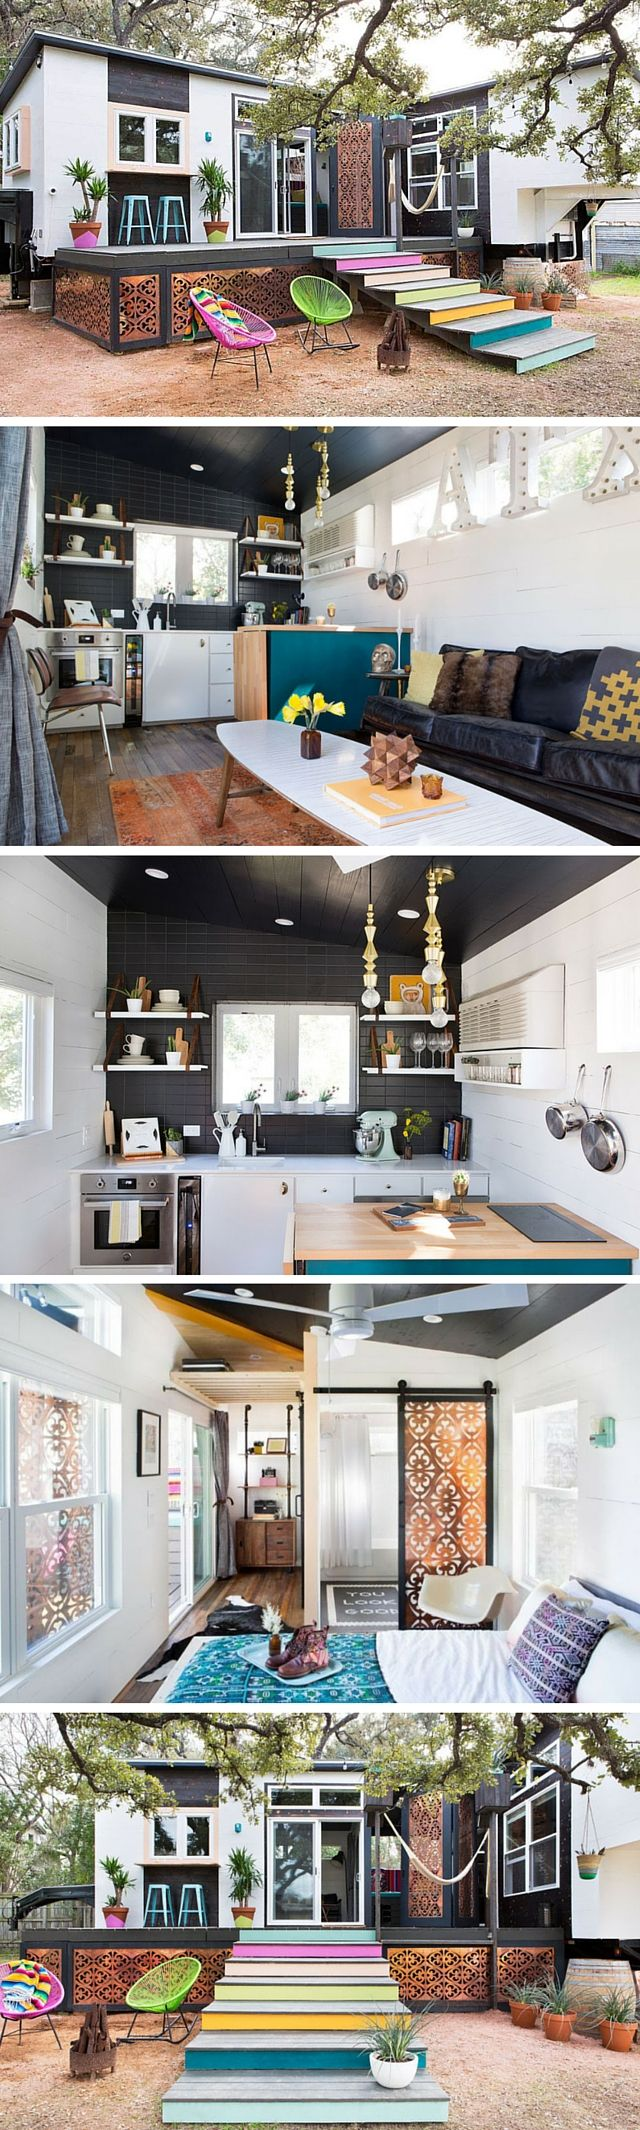 find this pin and more on modern style tiny houses - Interior Designs For Homes